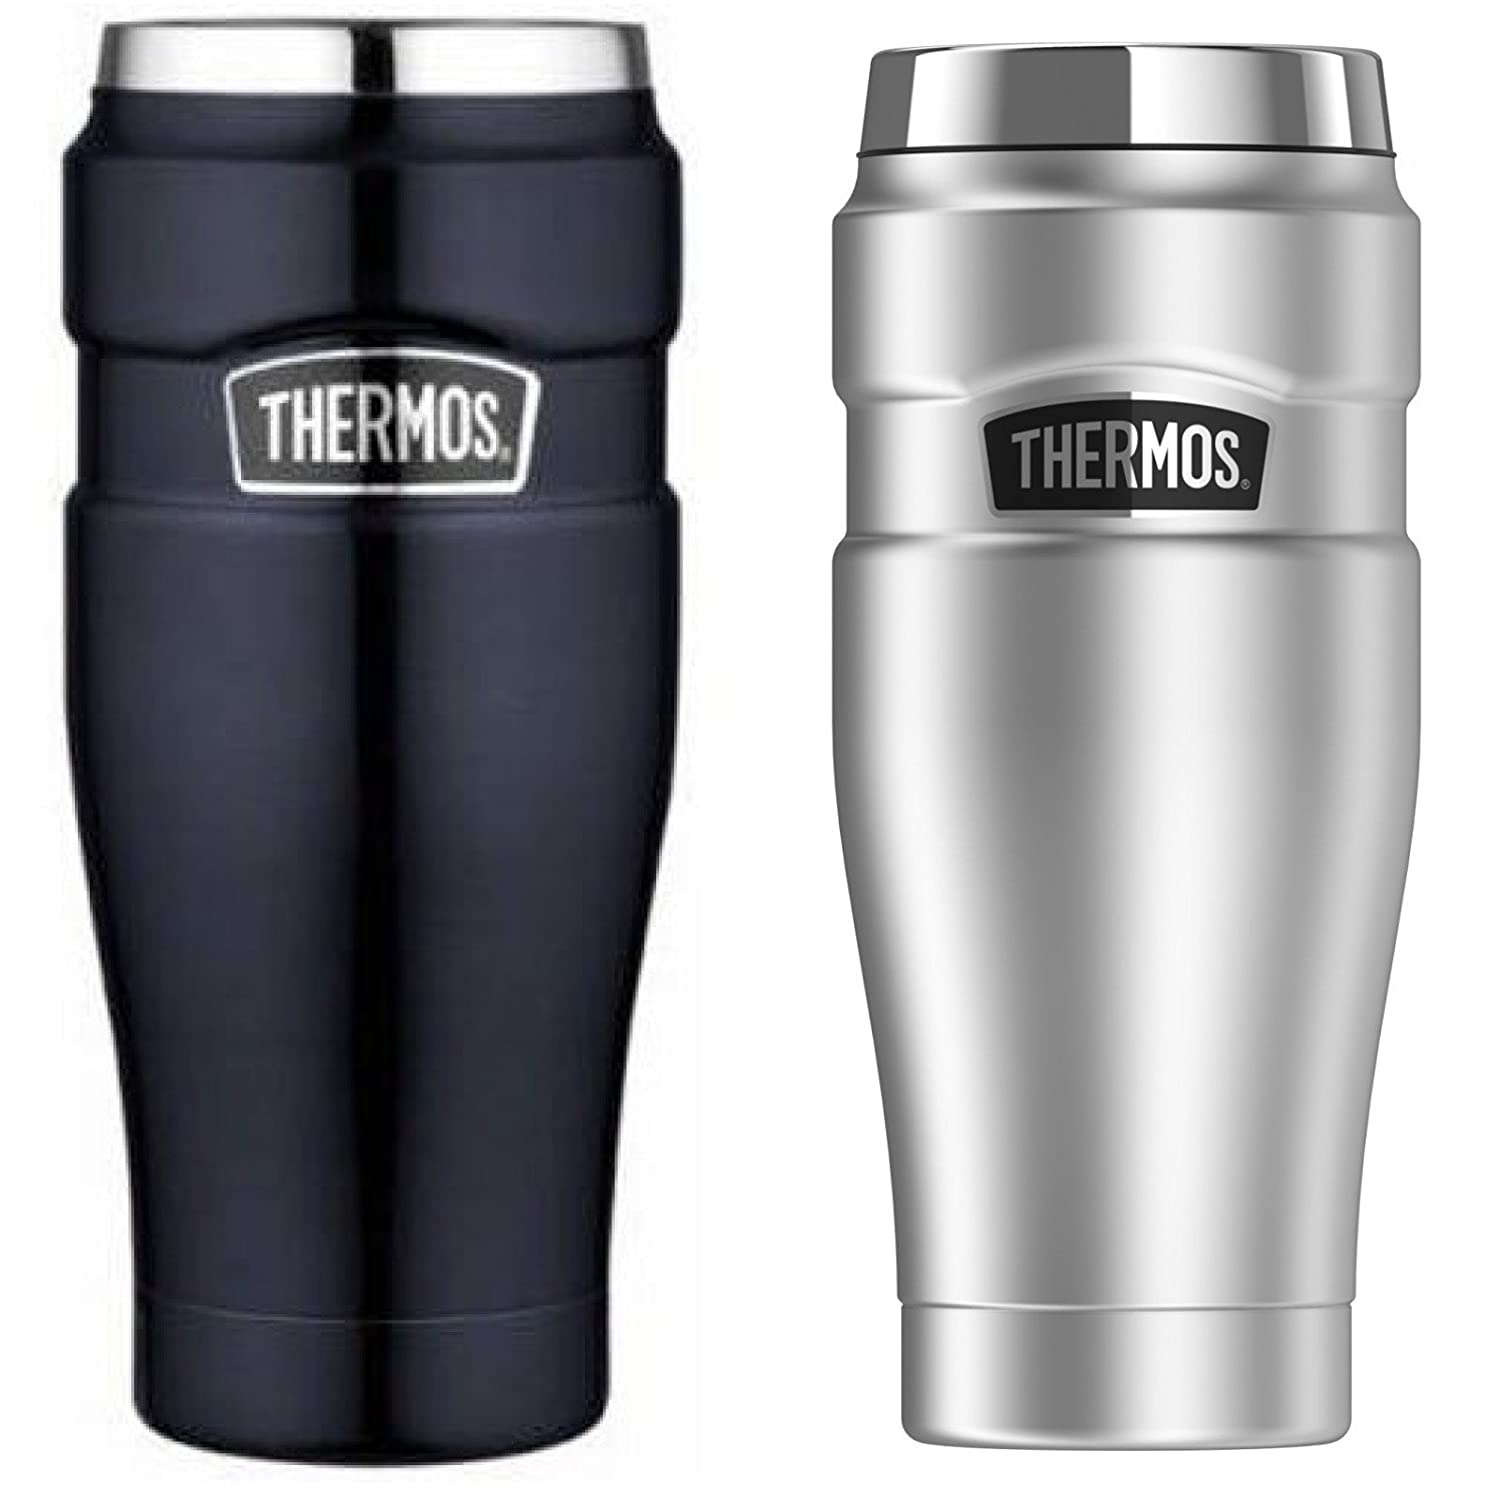 Thermos Stainless King 16-Ounce Travel Tumbler 2-PACK (Silver/Midnight Blue)